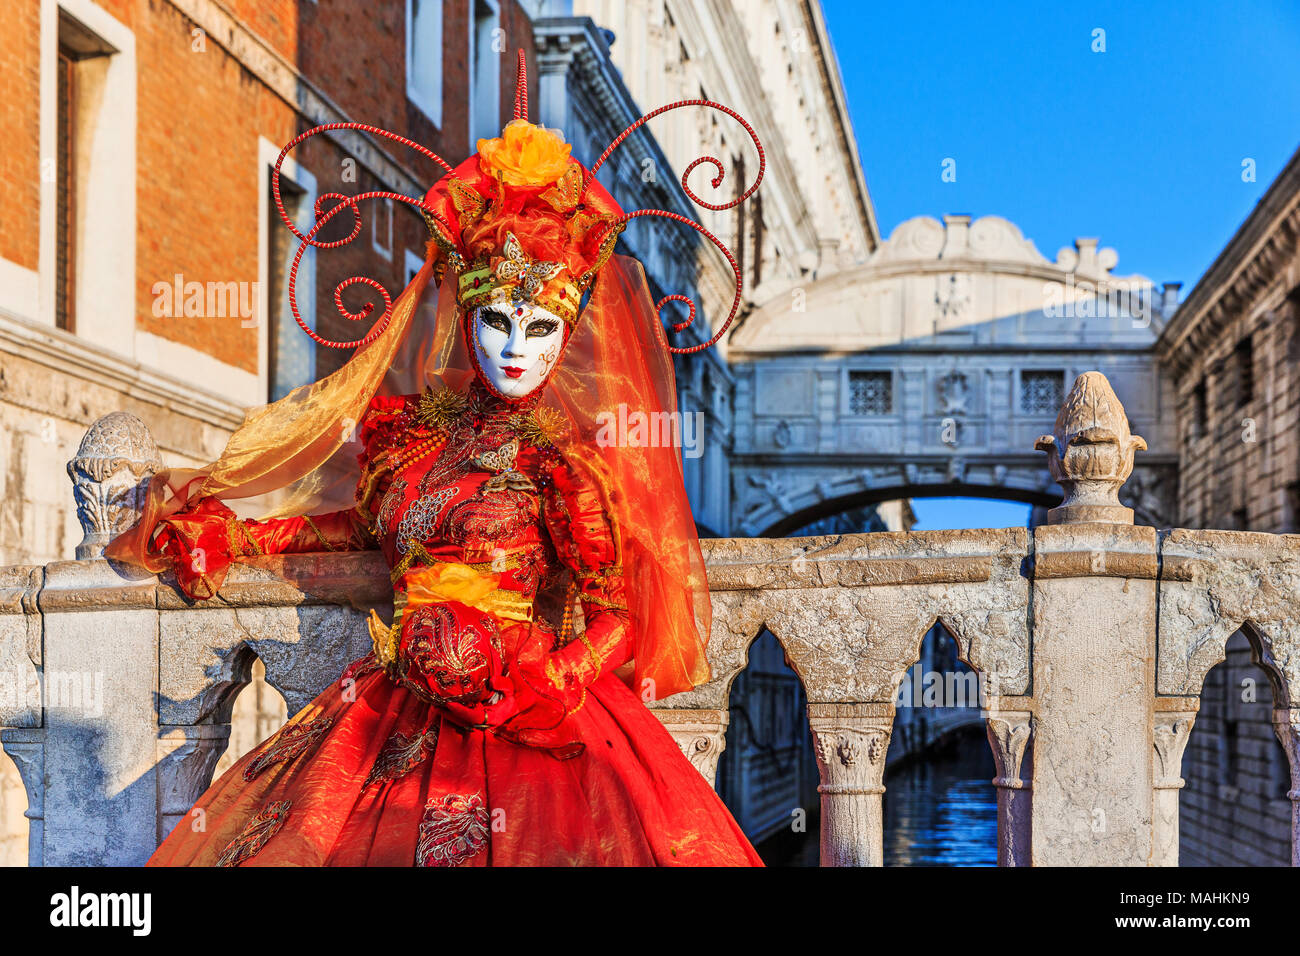 Venice, Italy. Carnival of Venice, beautiful mask at the Bridge of Sighs. Stock Photo